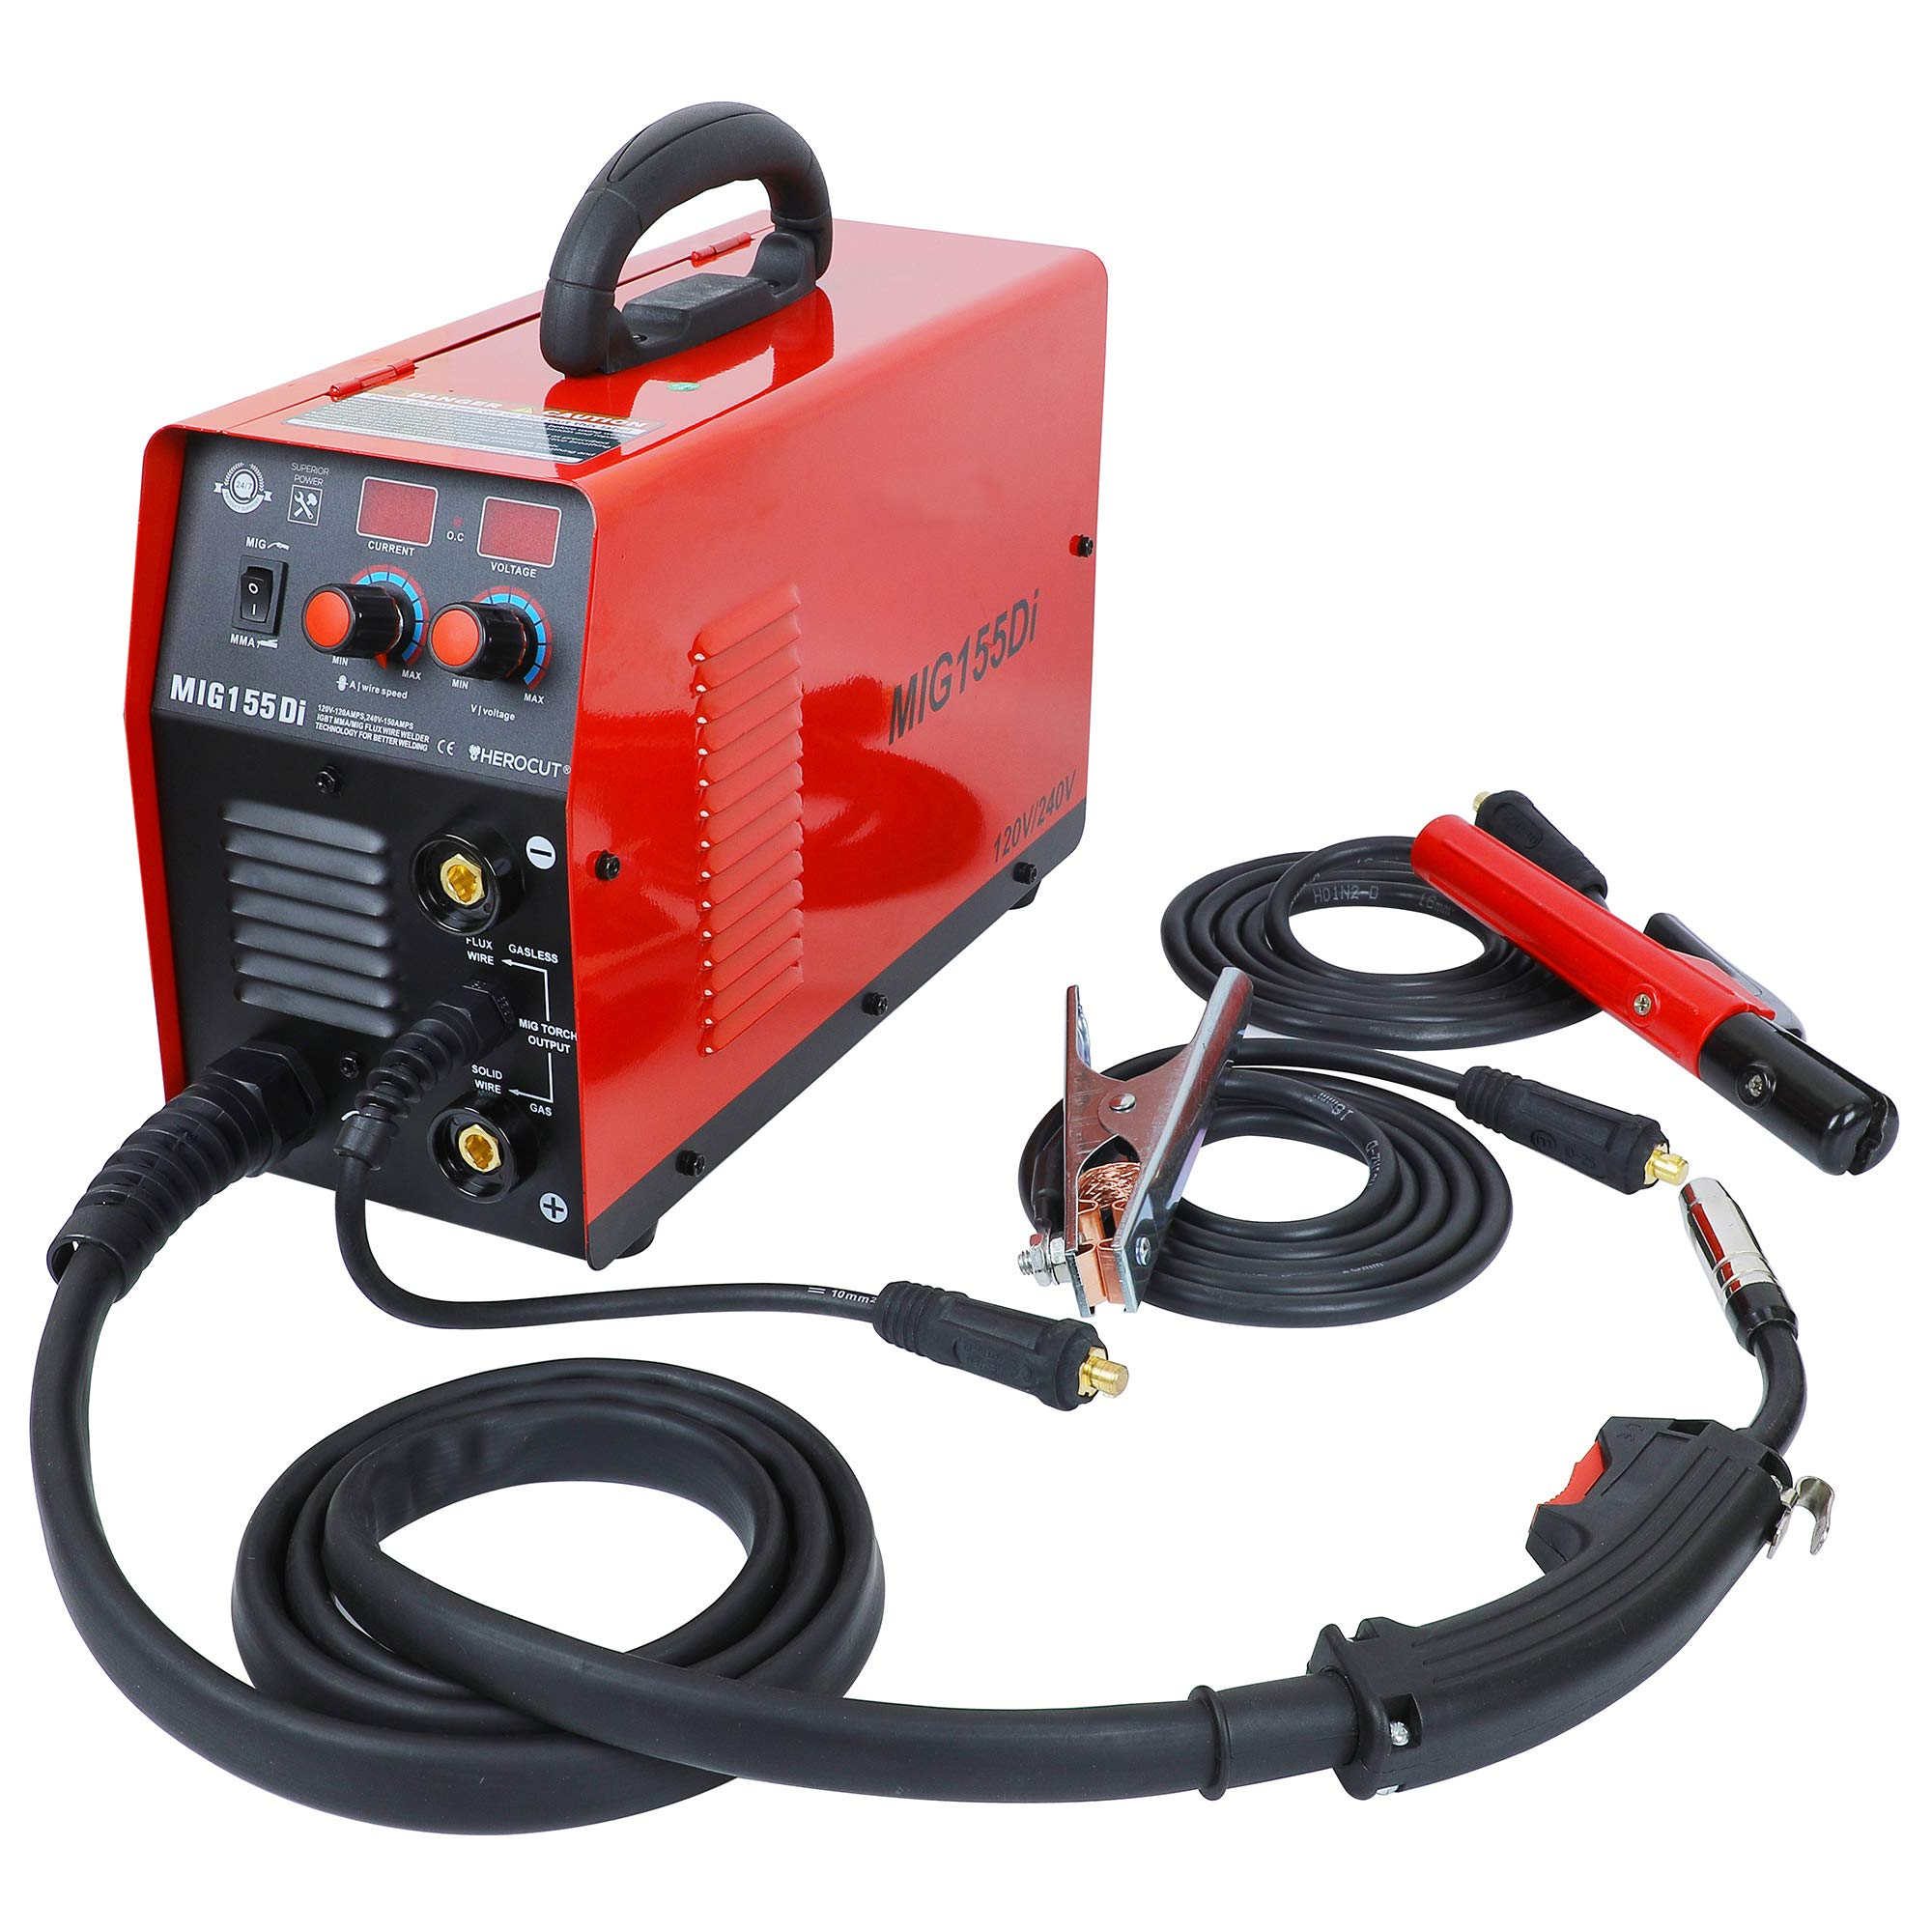 220V IGBT Inverter Mig Welding Machine MIG155 Gas/No Gas, MMA/MIG Flux Wire Welding machine 2 in 1 MMA/Mig Welding Machine 220V Input by HEROCUT